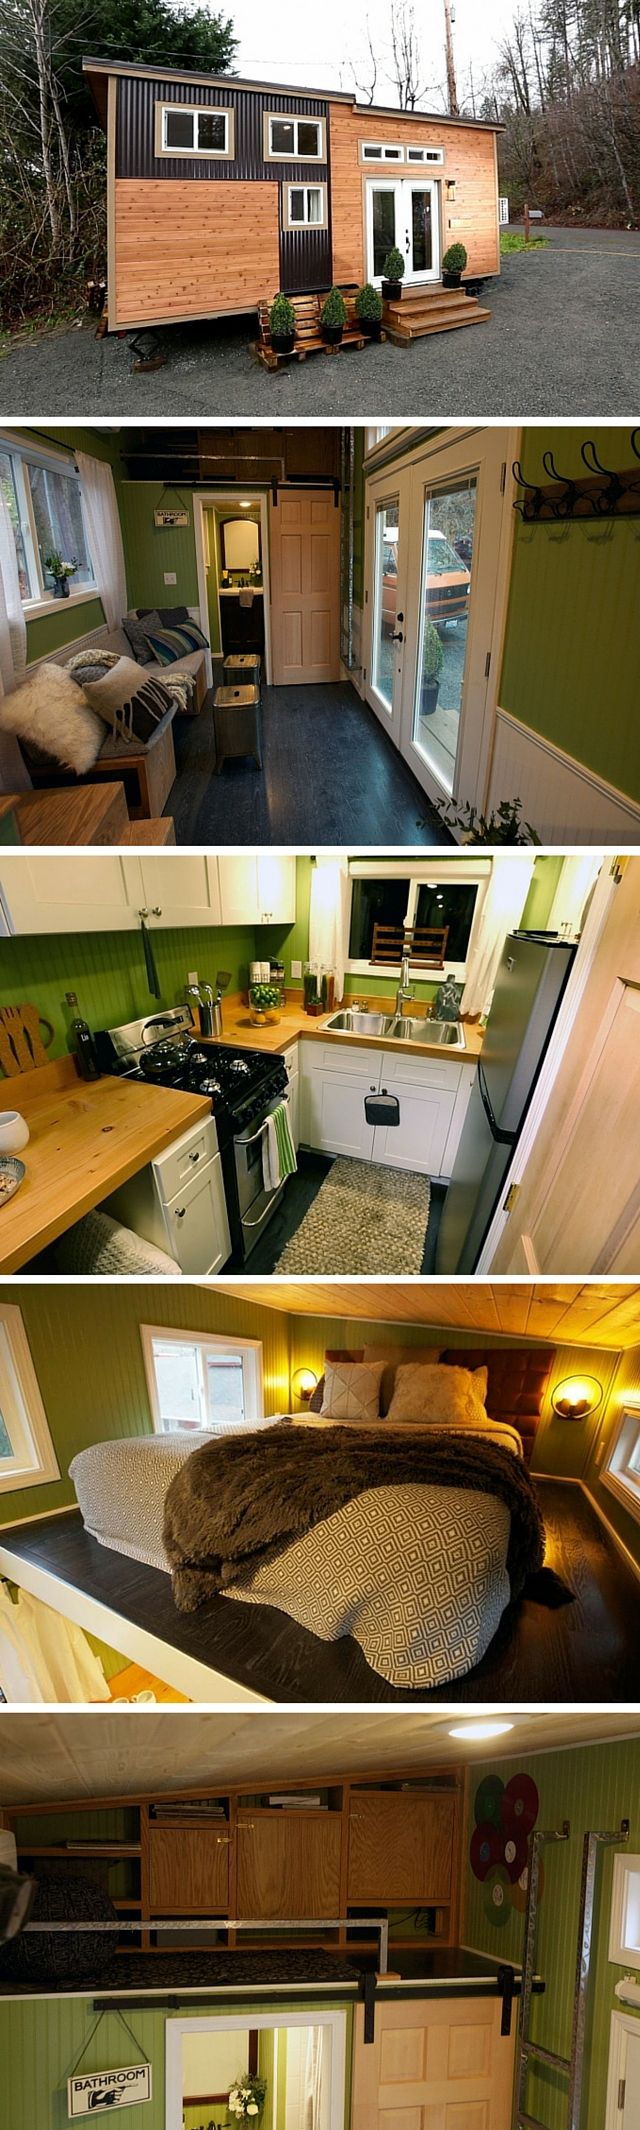 The Romantic Abode: a 240 sq ft tiny house designed for a young couple in love